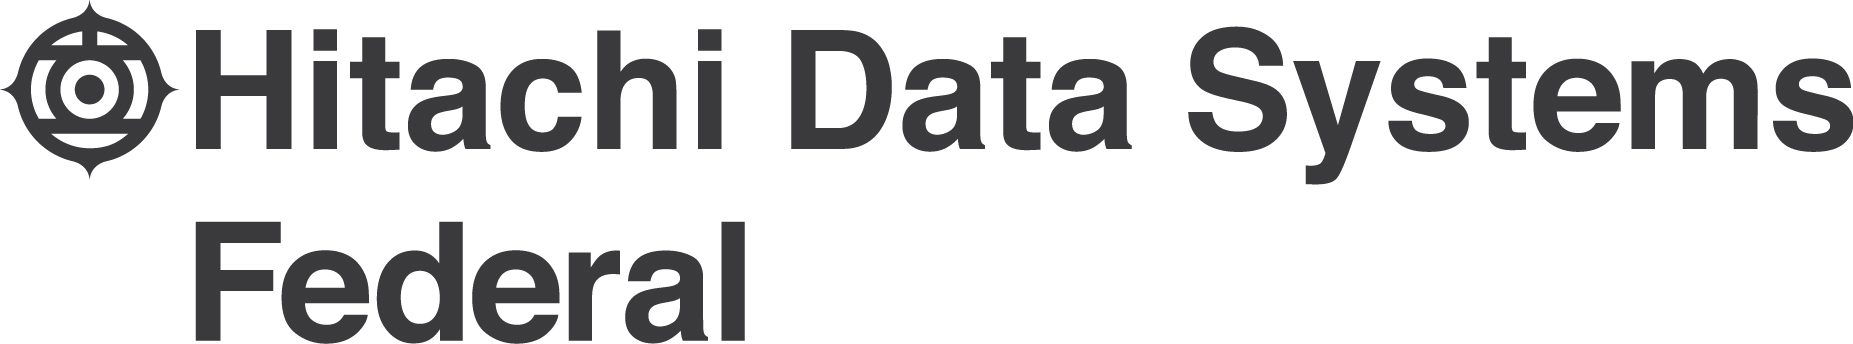 hitachi data systems logo. hitachi data systems federal appoints new chief financial officer and vice president of operations | business wire logo (